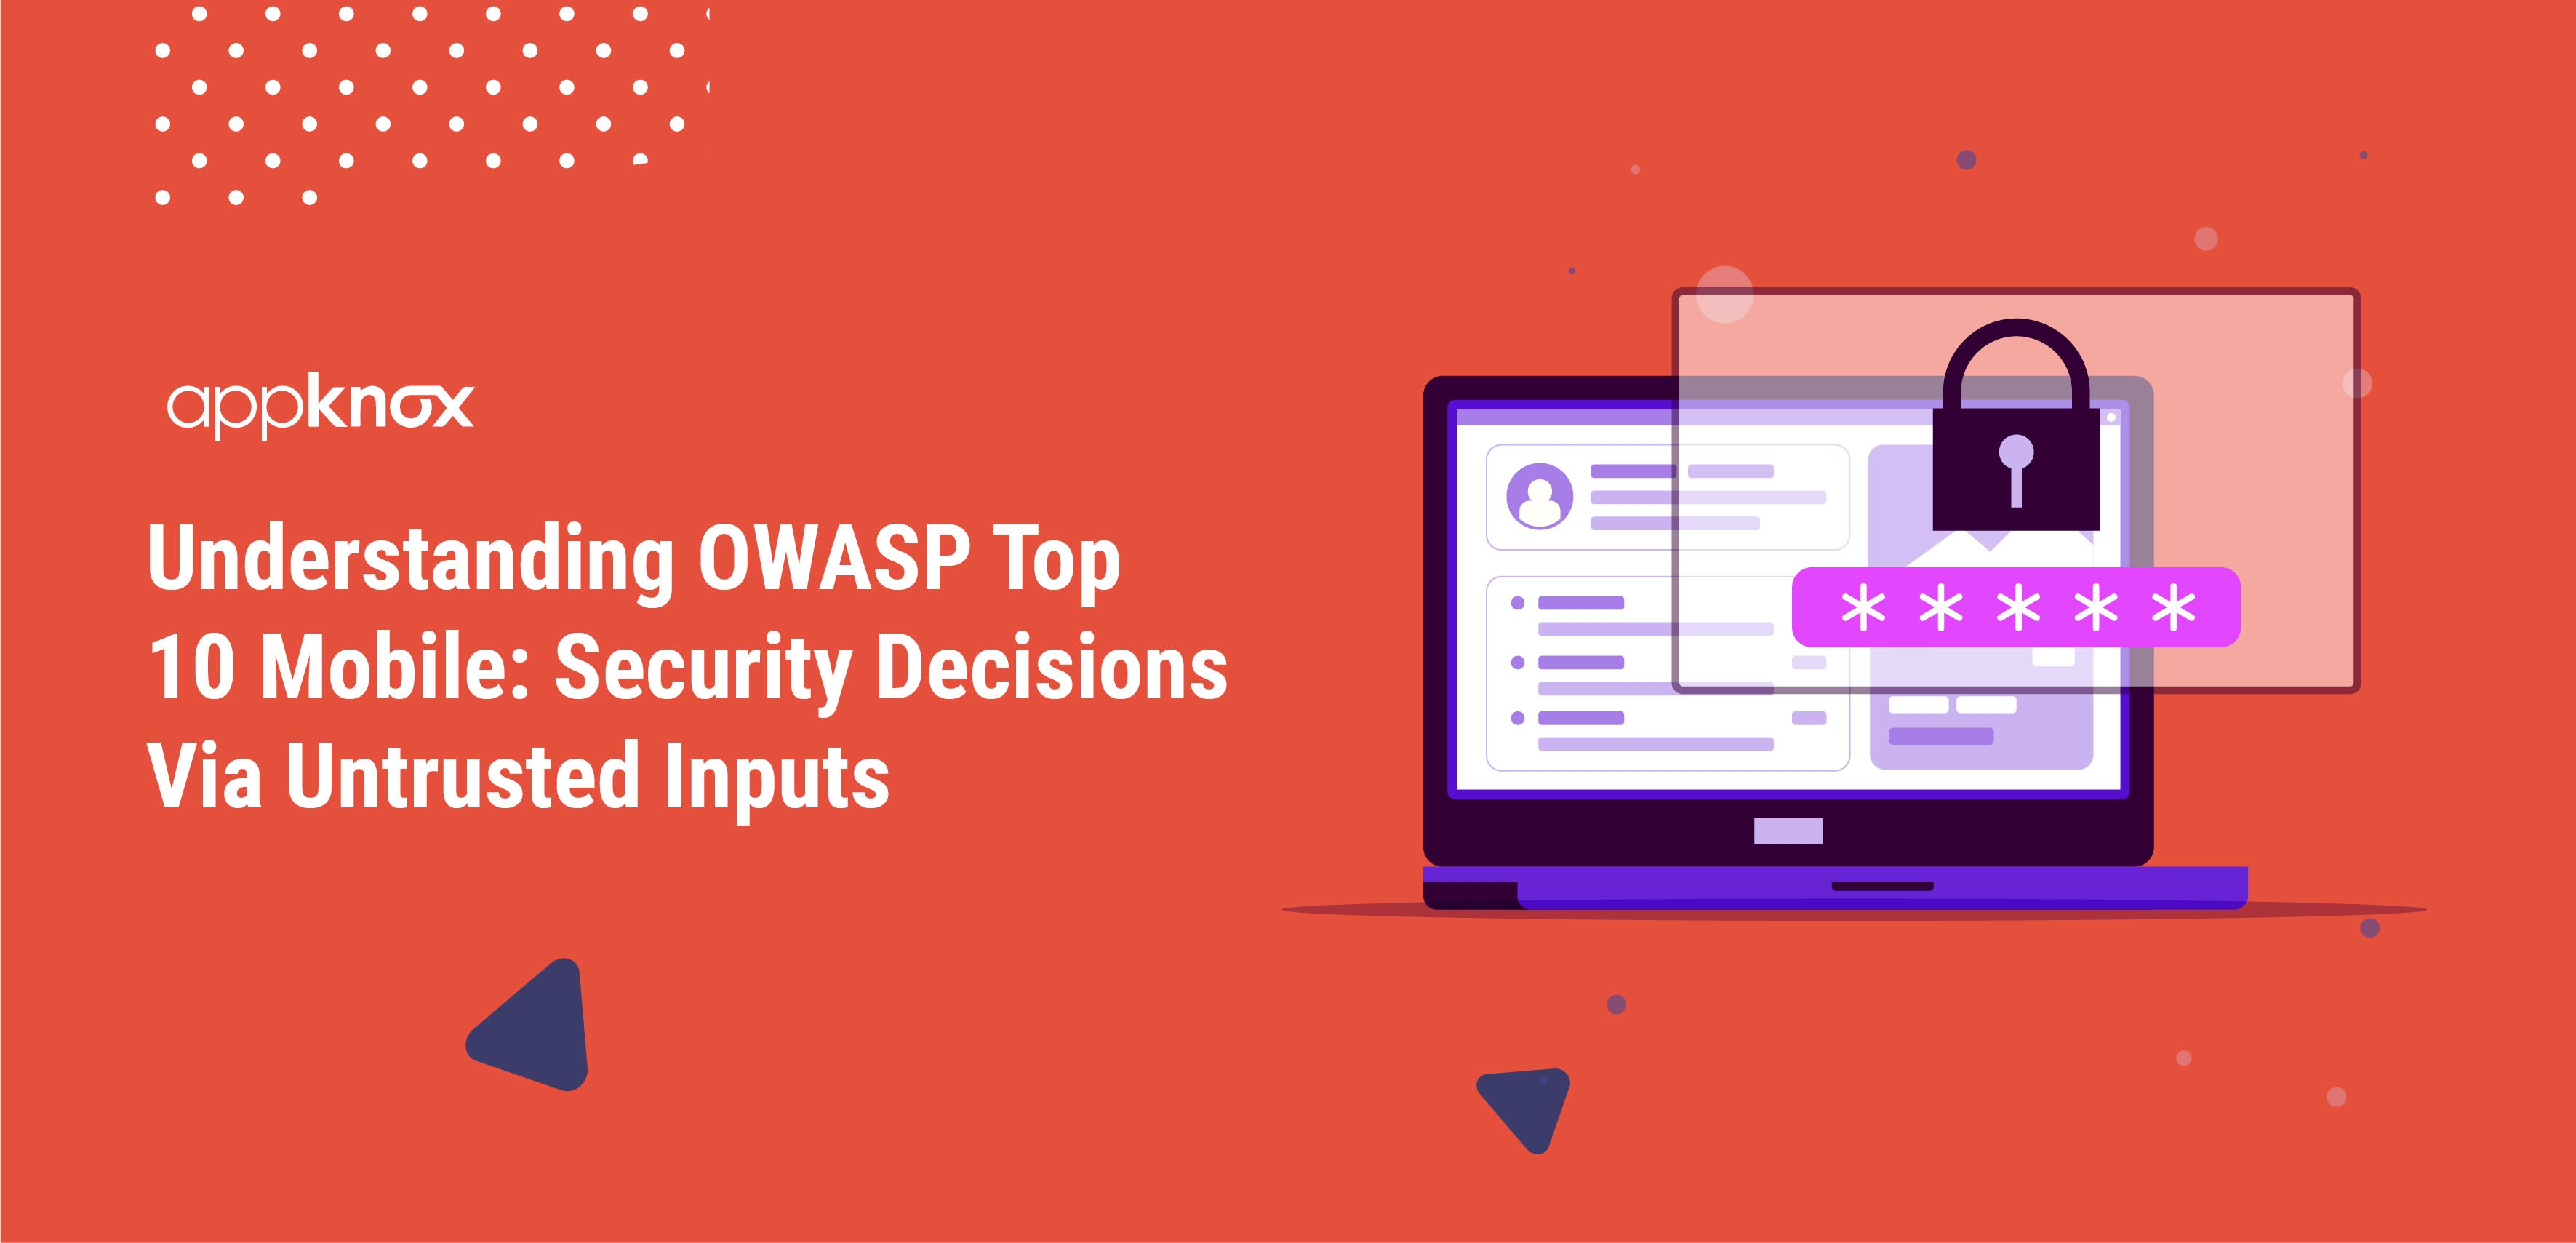 Understanding OWASP Top 10 Mobile: Security Decisions Via Untrusted Inputs